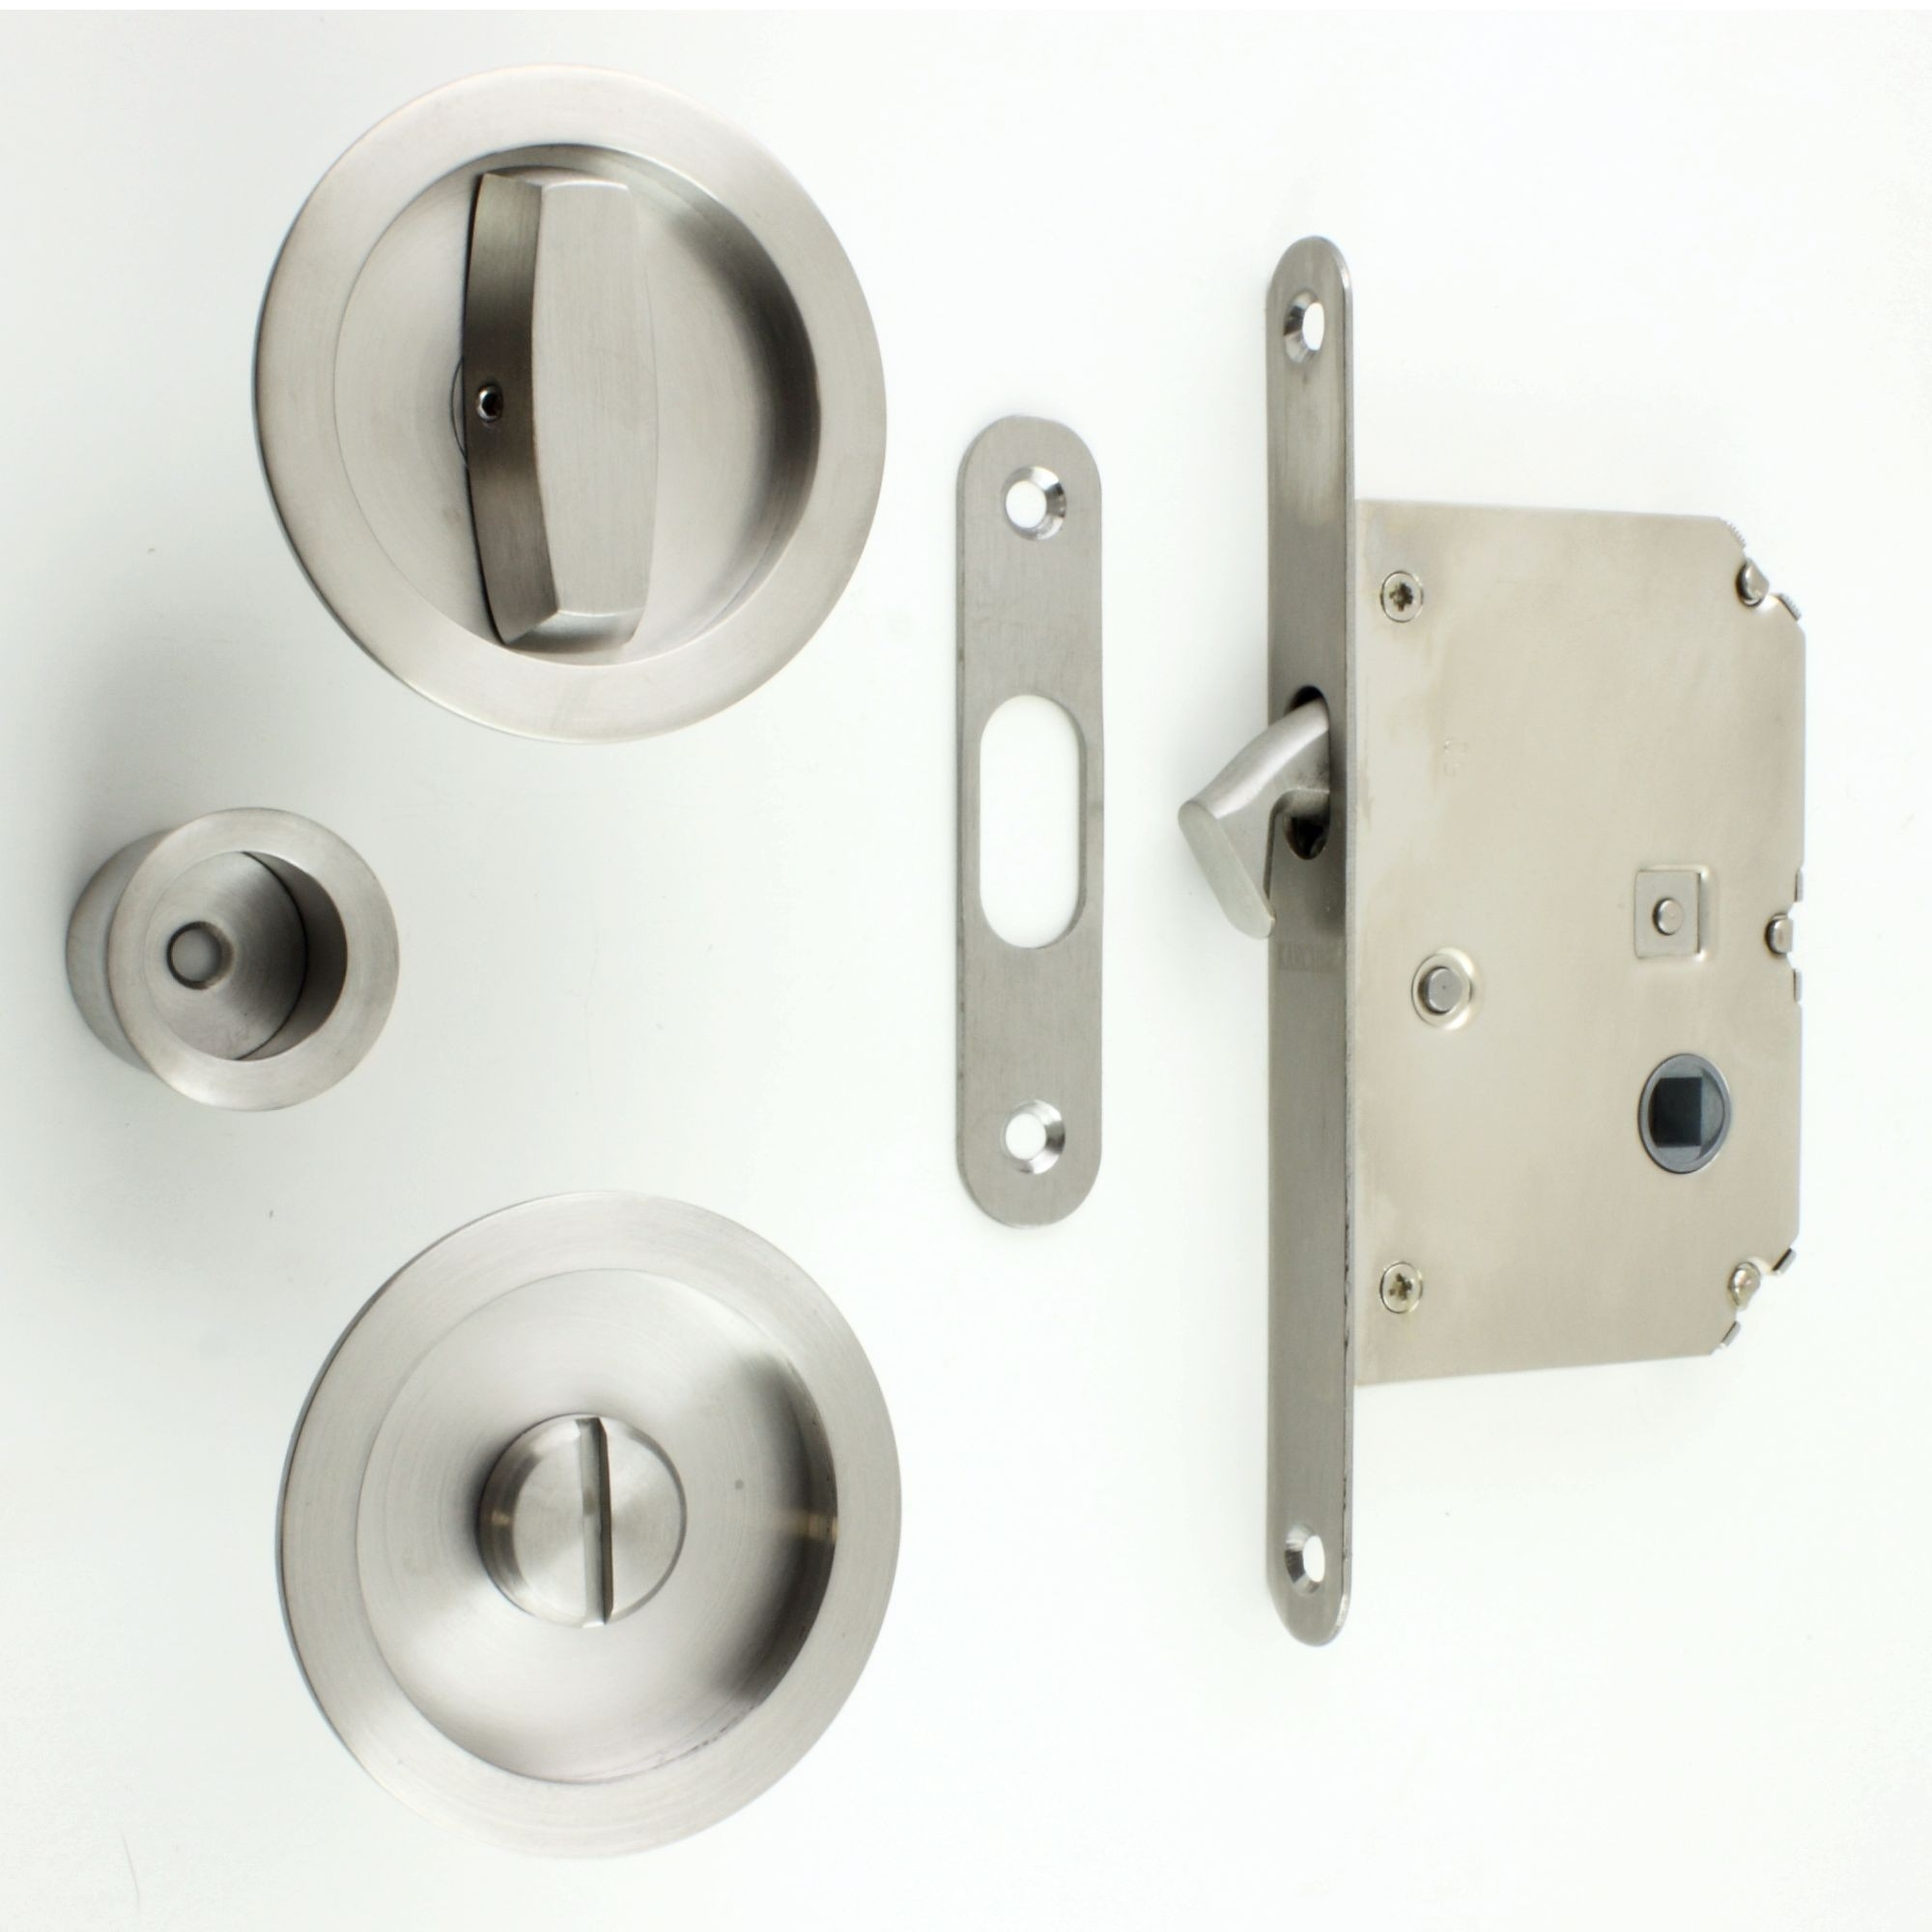 Bathroom Door Lock Bunningsbathroom door knob with lock all new home design